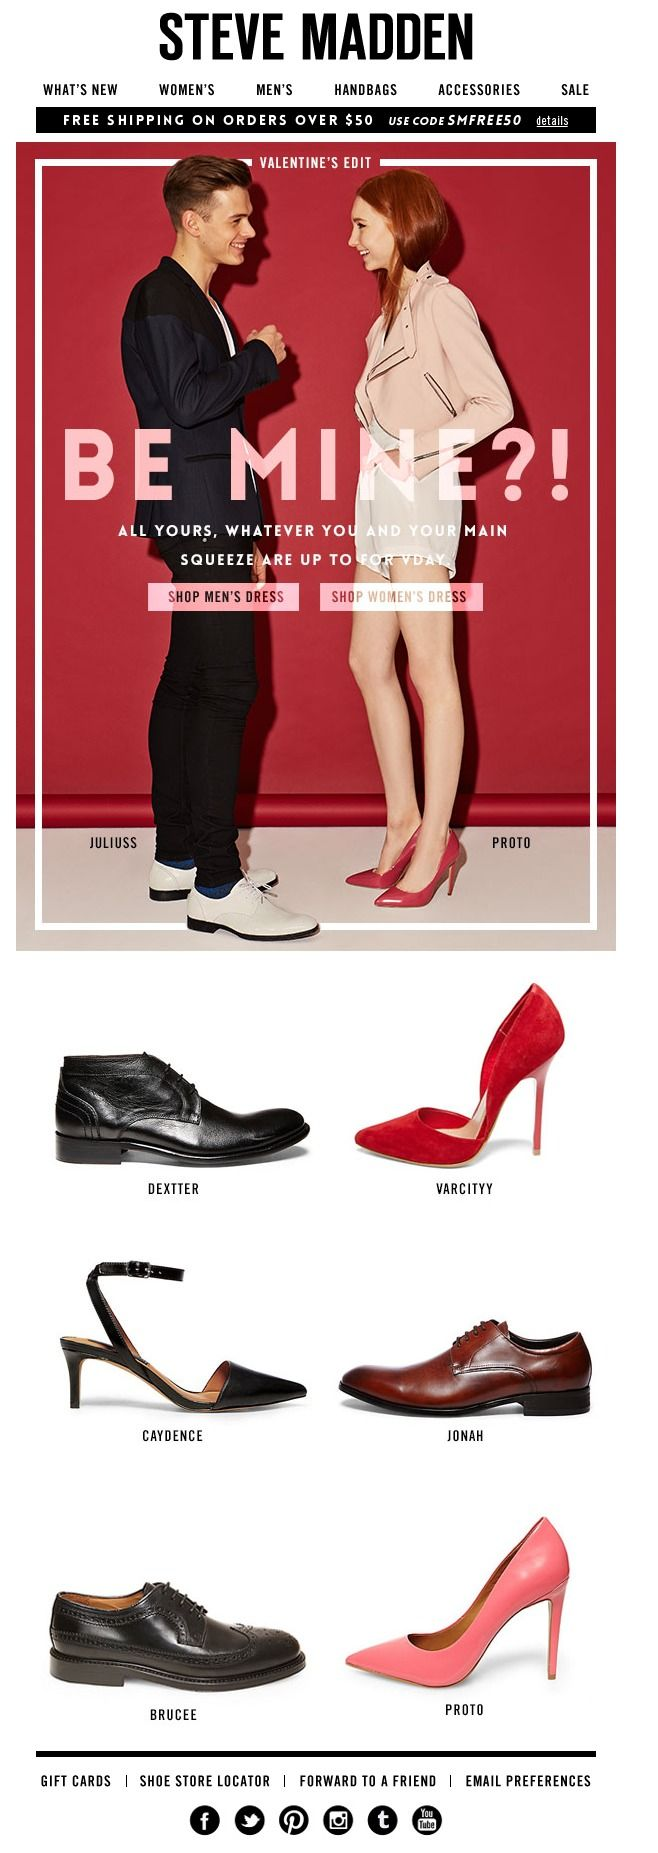 We love this Valentine's Day email from shoe retailer Steve Madden. Find more V-Day email design inspiration at the Email Design Workshop here: http://emaildesign.beefree.io/2016/02/inspiration-for-valentines-day-emails/